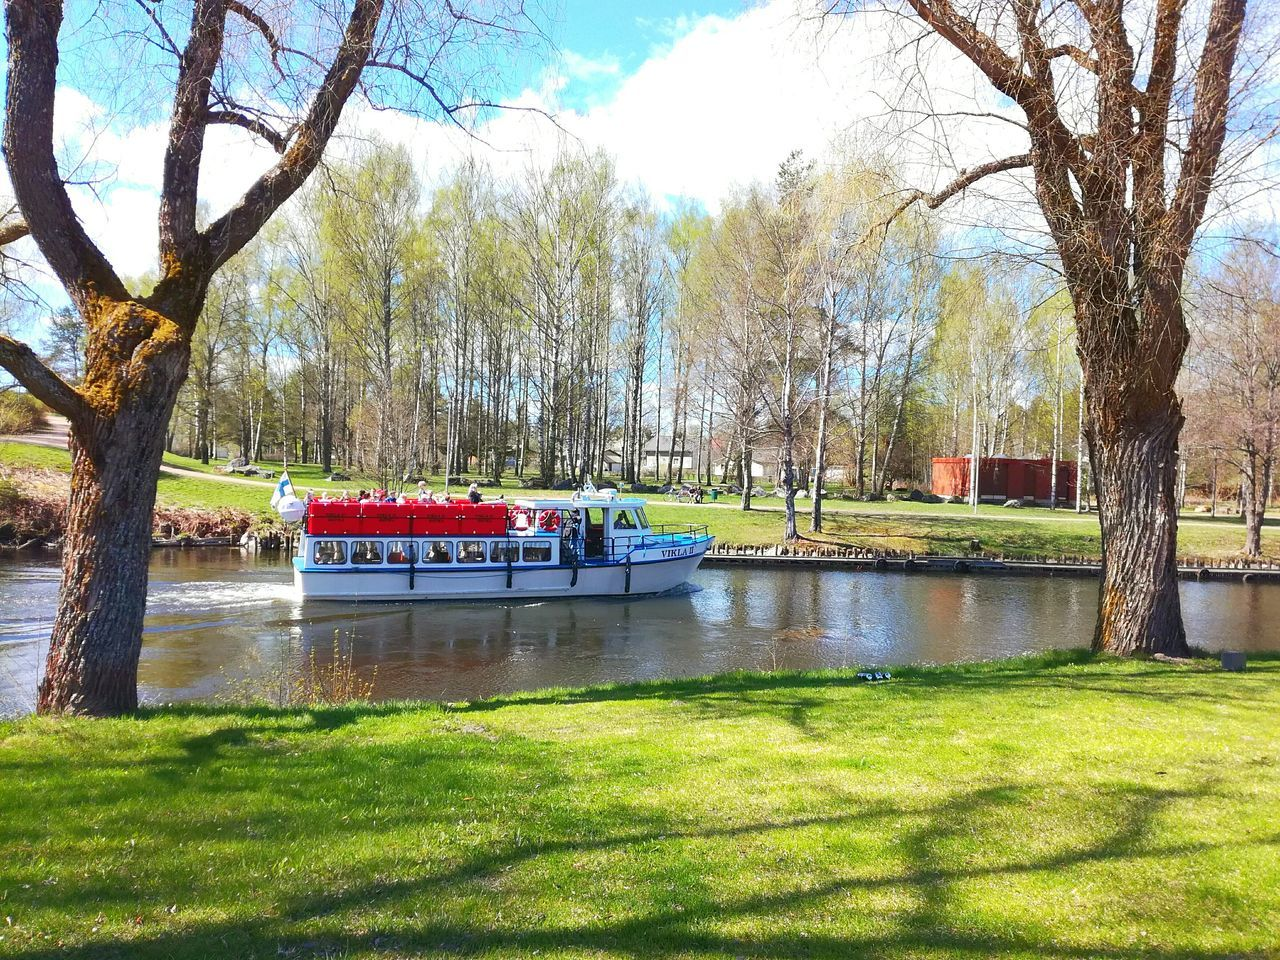 Tree Grass Water Green Color Nature Day Outdoors Enjoying Summer Finland Nature River Boat Criuser Cruise Riverside River View River Cruise Sunny Day Beautiful Day Neighborhood Map